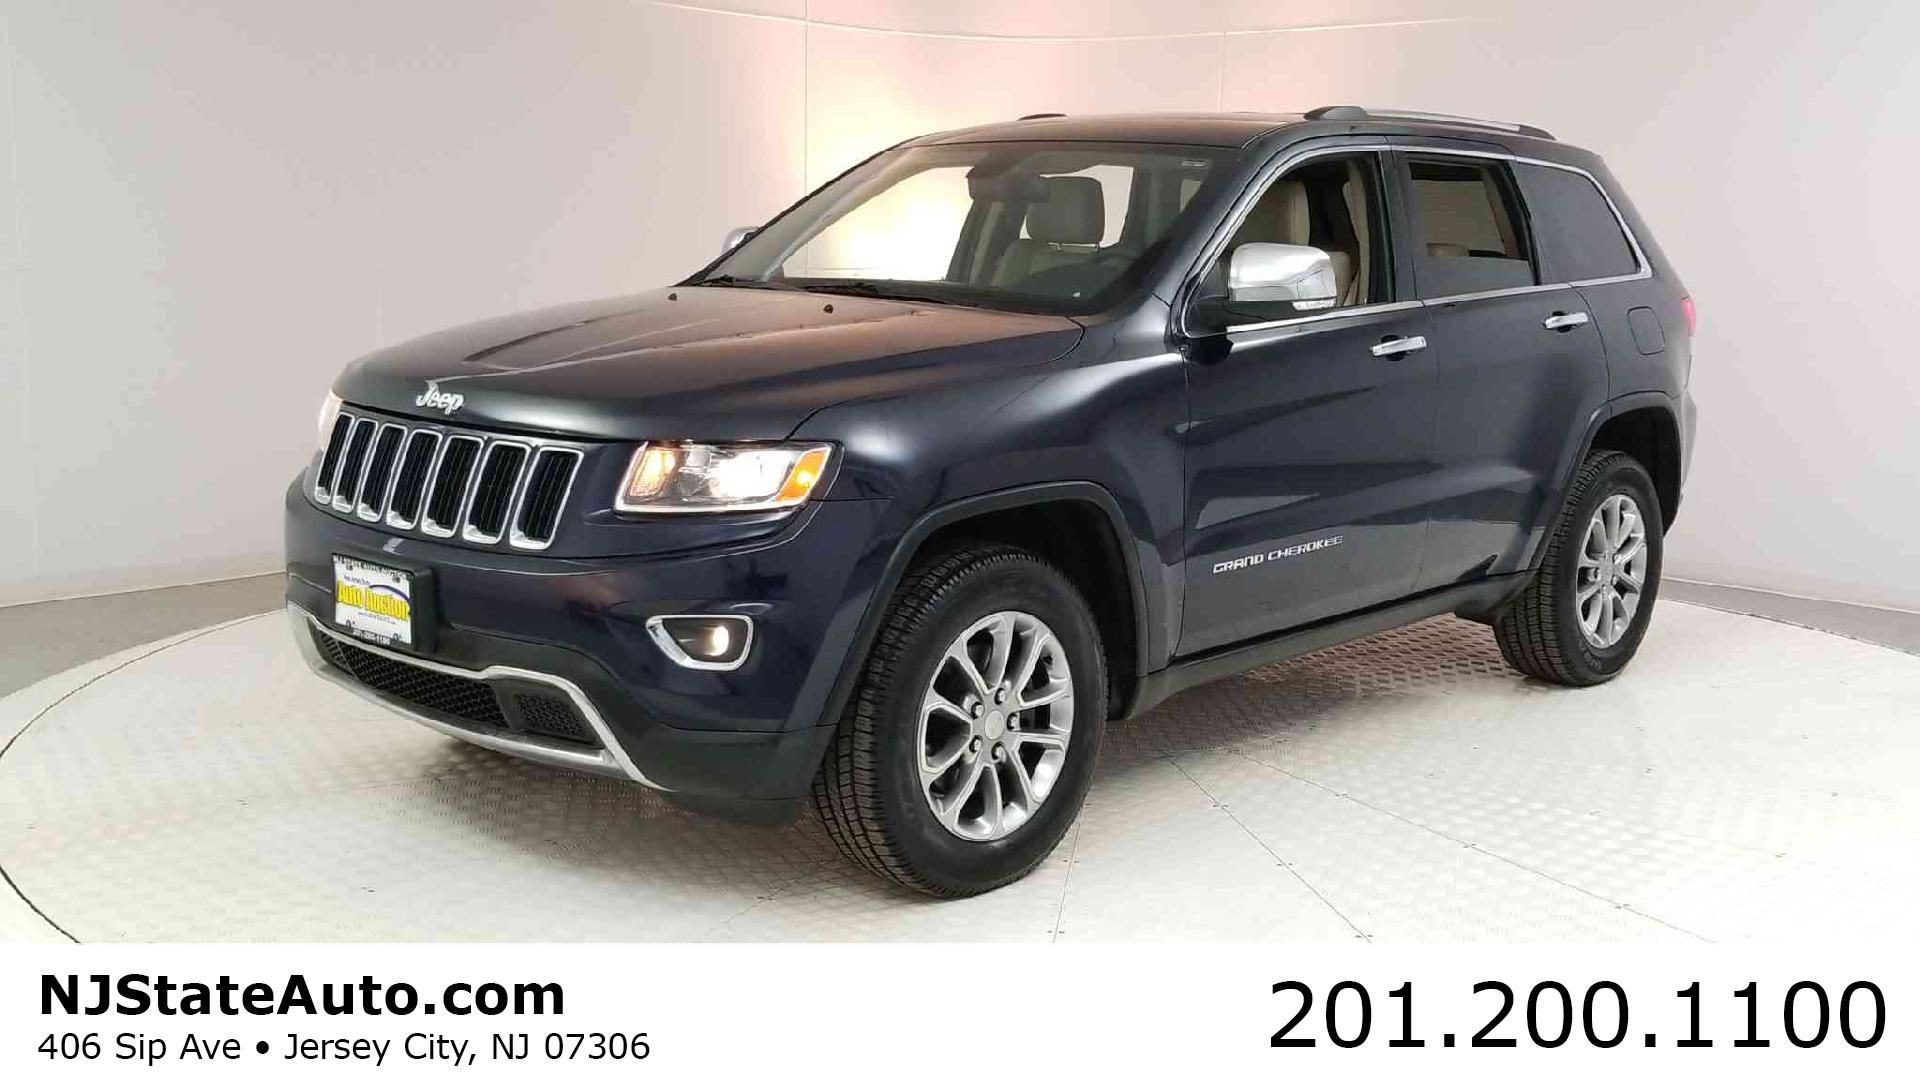 2014 Jeep Grand Cherokee 4wd 4dr Limited Just Listed For Sale At